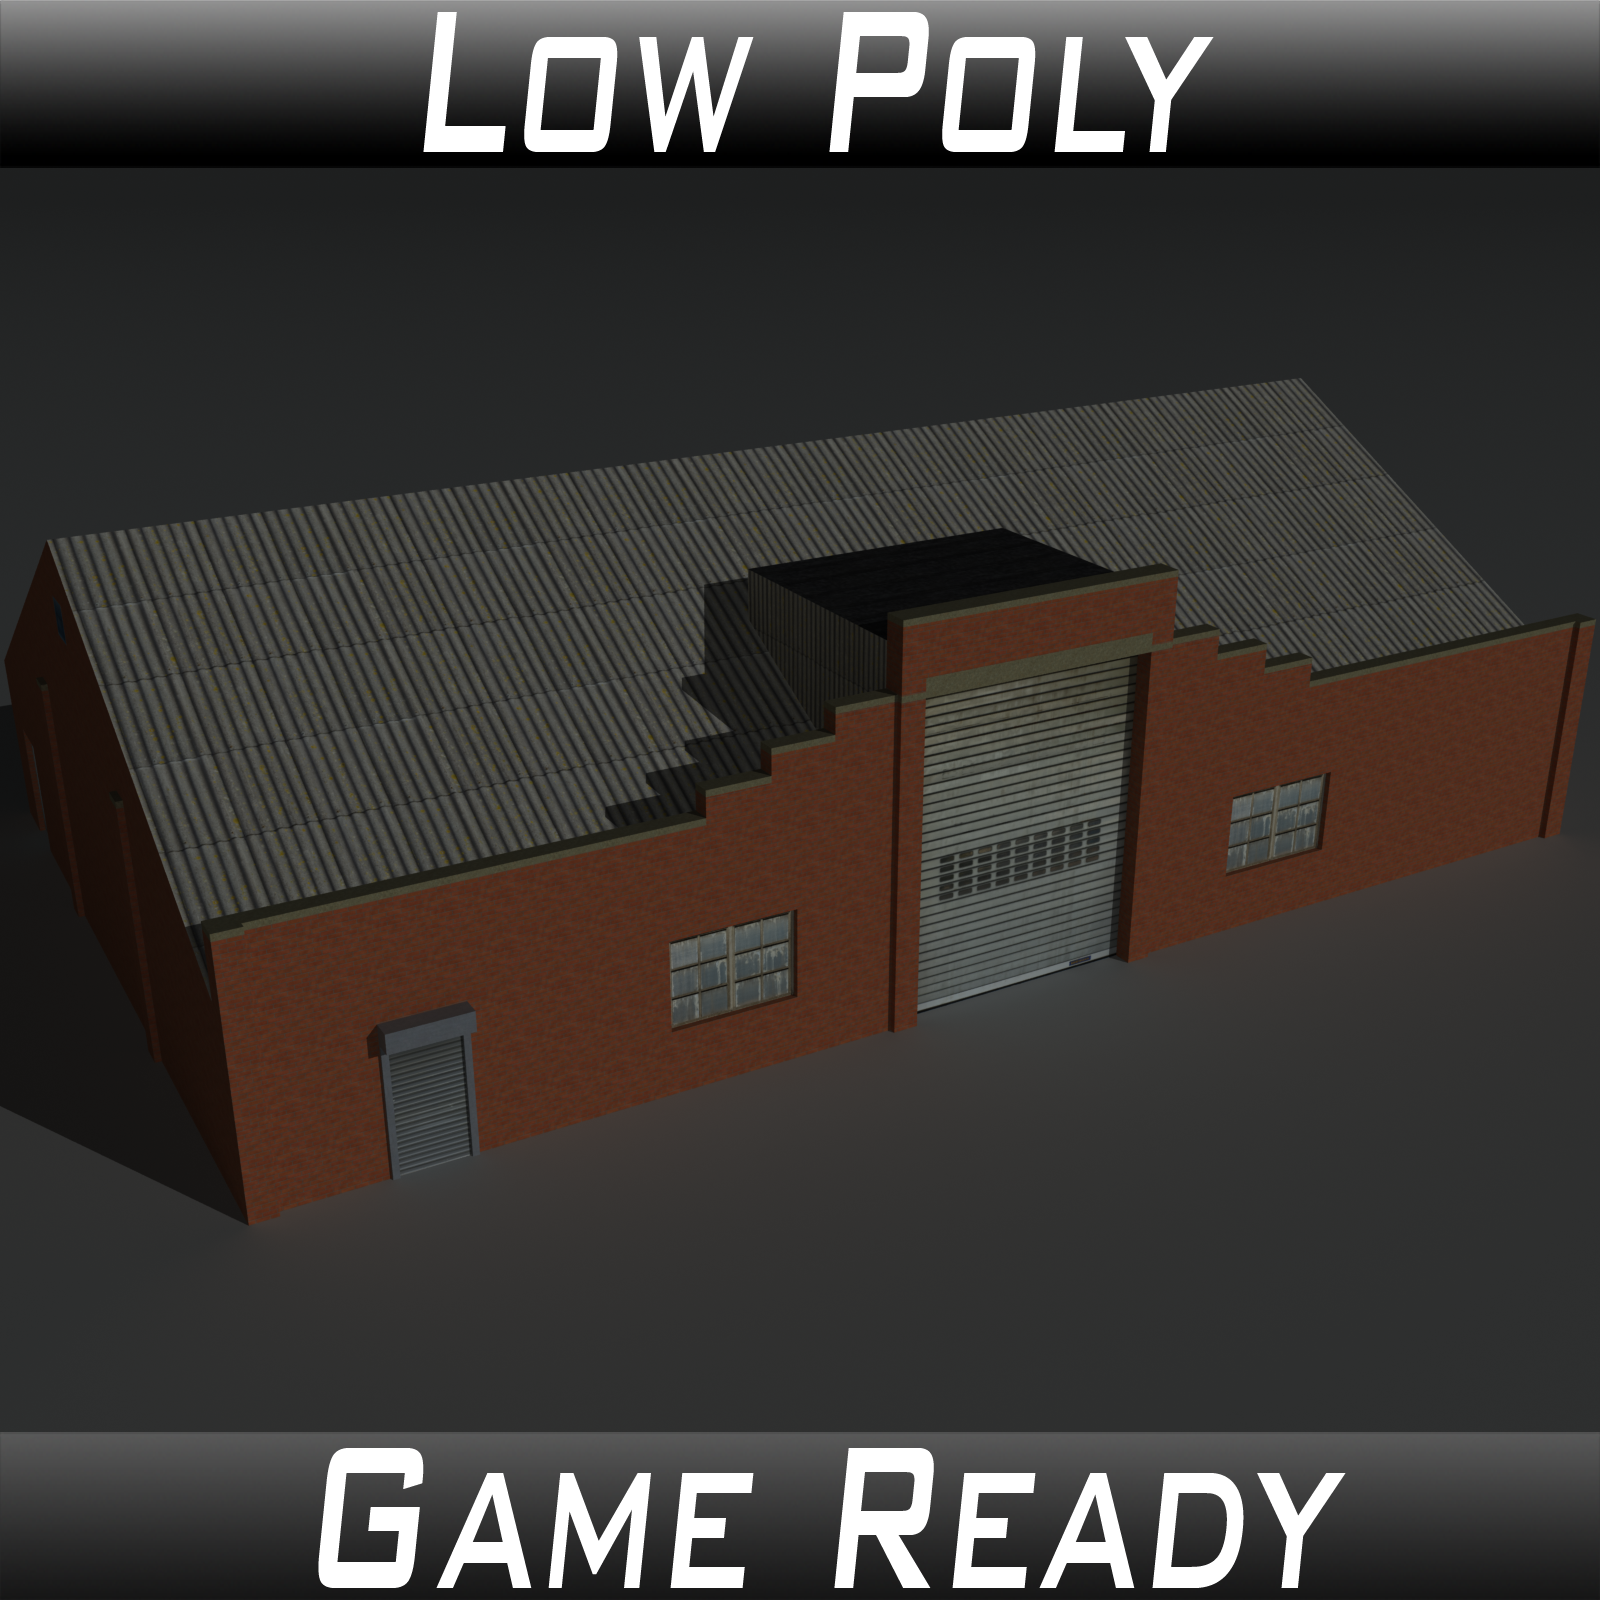 Low Poly Factory Building 30 - Extended Licence by 3dlands